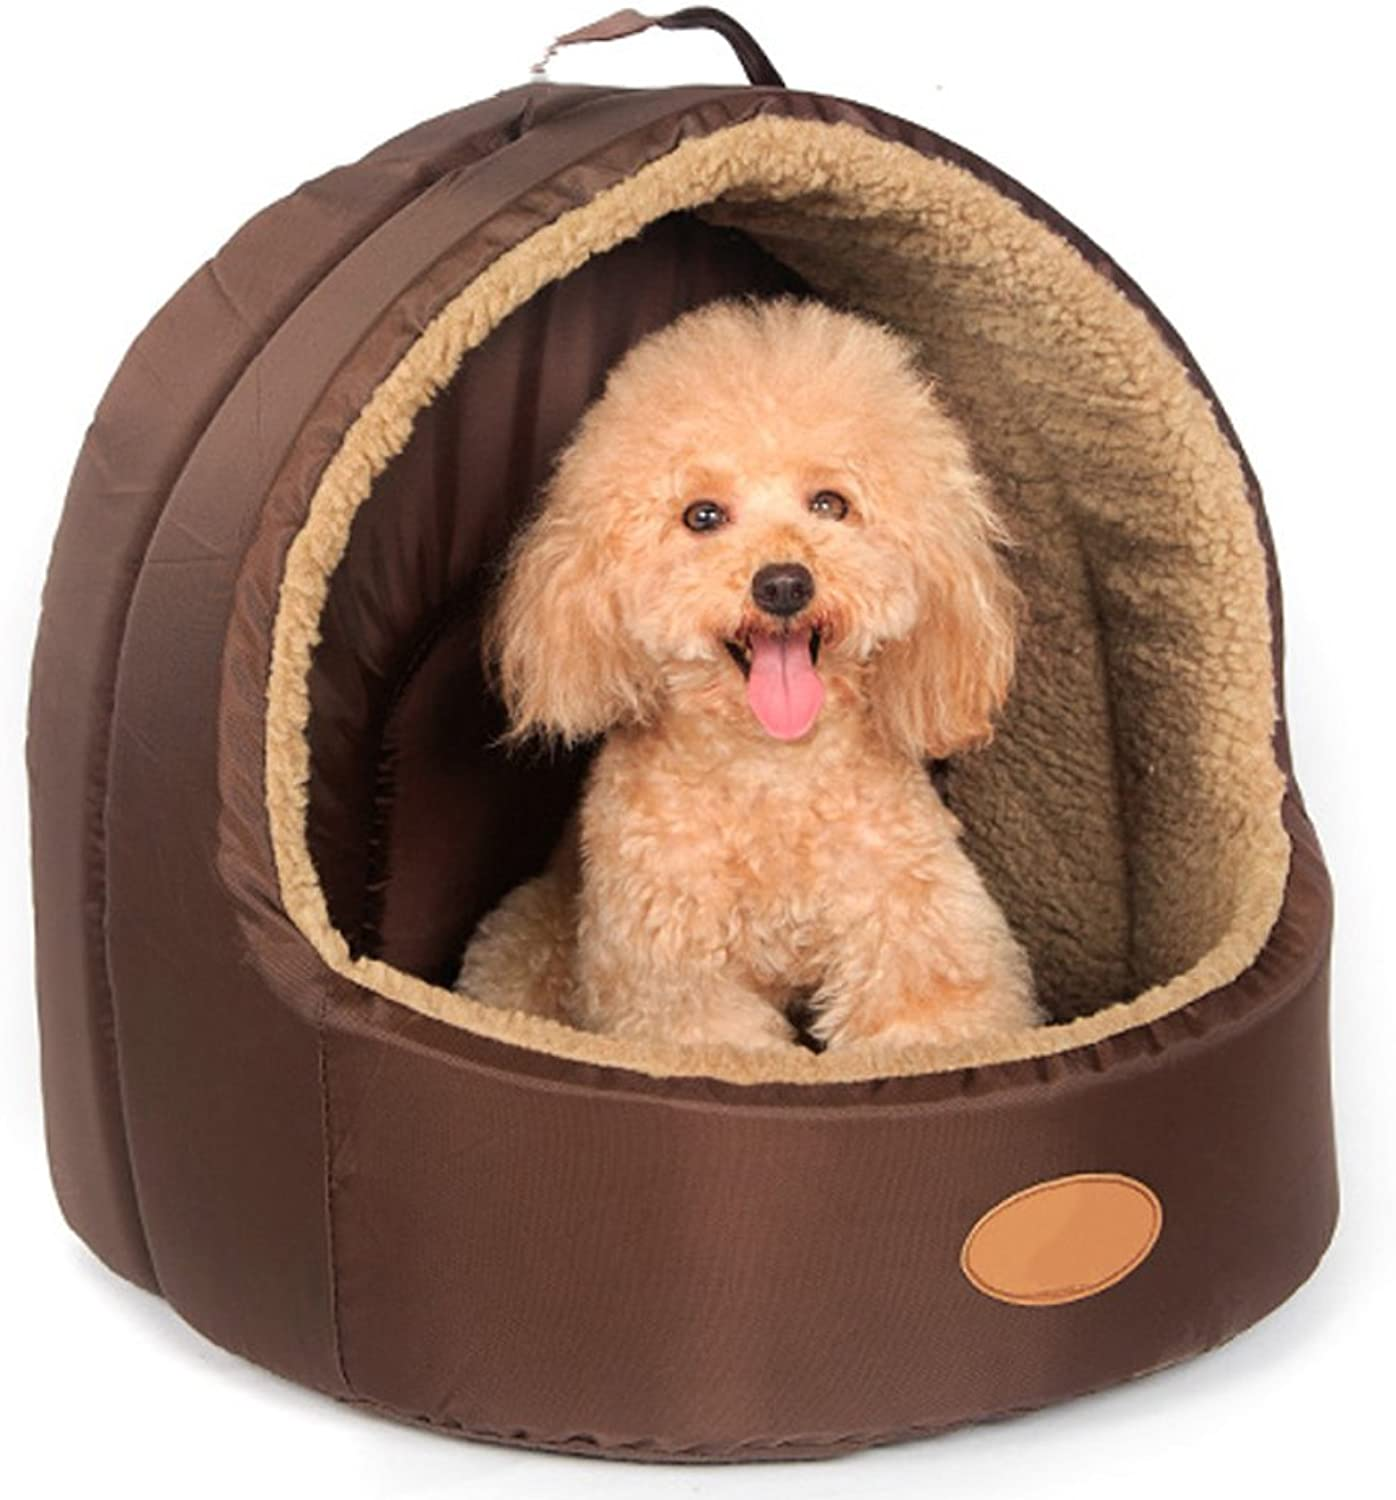 Kennel Washable Dog House Doghouse Cat Litter Pet Dog Supplies Winter Warm Kennel,BL33W30H30cm 13  12  12in